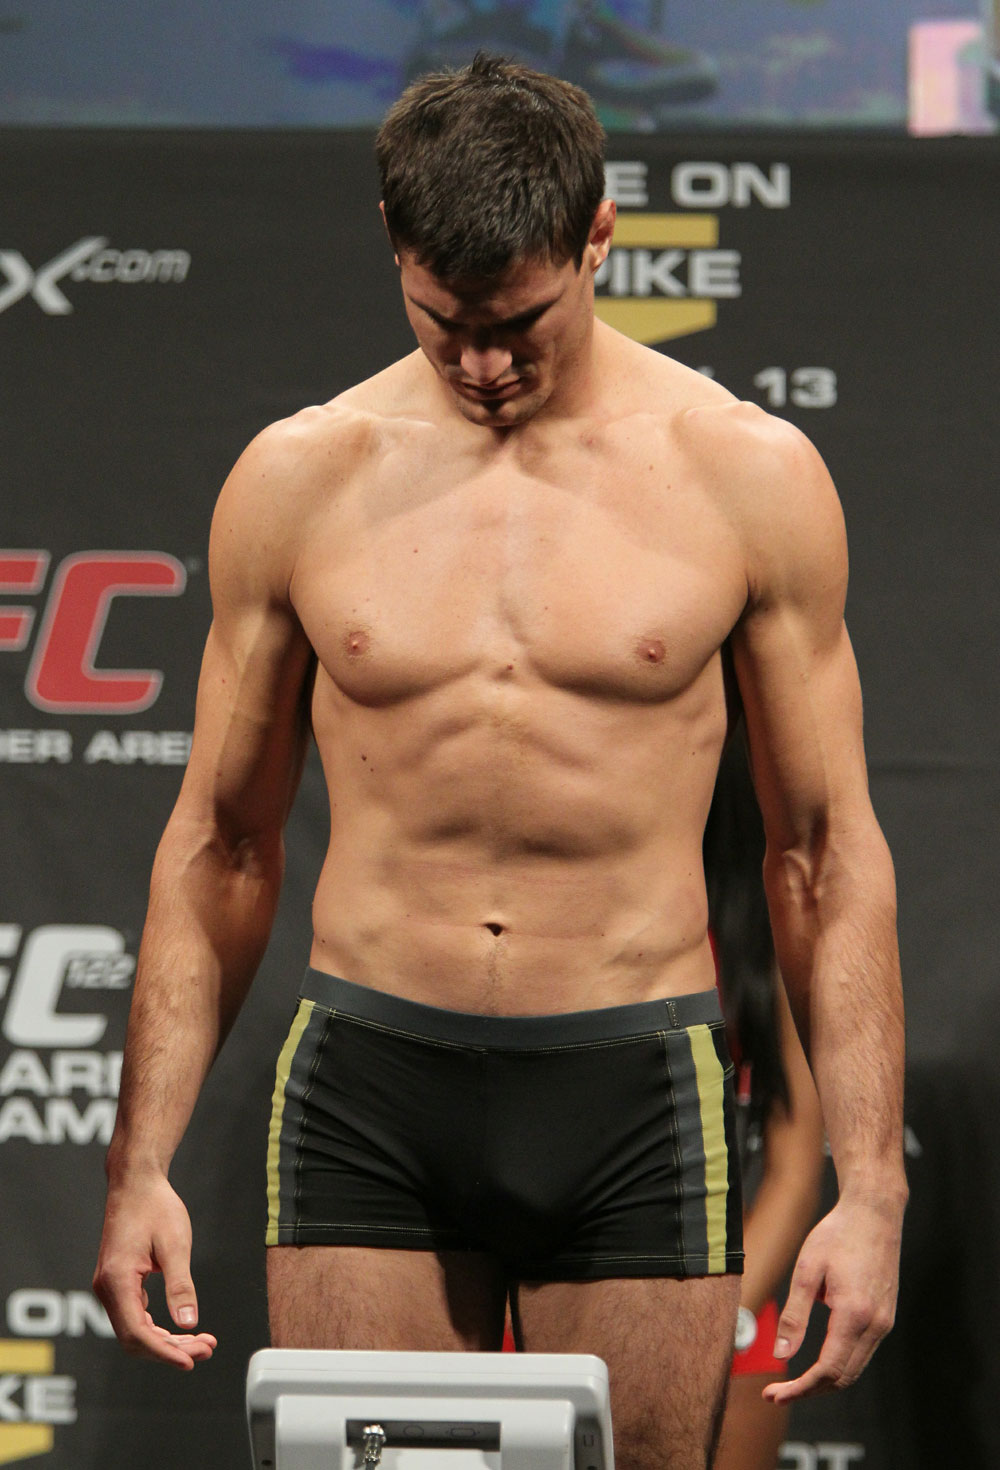 Goran Reljic of Croatia weighs in at 205 lbs at the UFC 122 weigh-in at the K&scaron;nig Pilsener Arena on November 12,  2010 in Oberhausen, Germany.  (Photo by Josh Hedges/Zuffa LLC/Zuffa LLC via Getty Images)